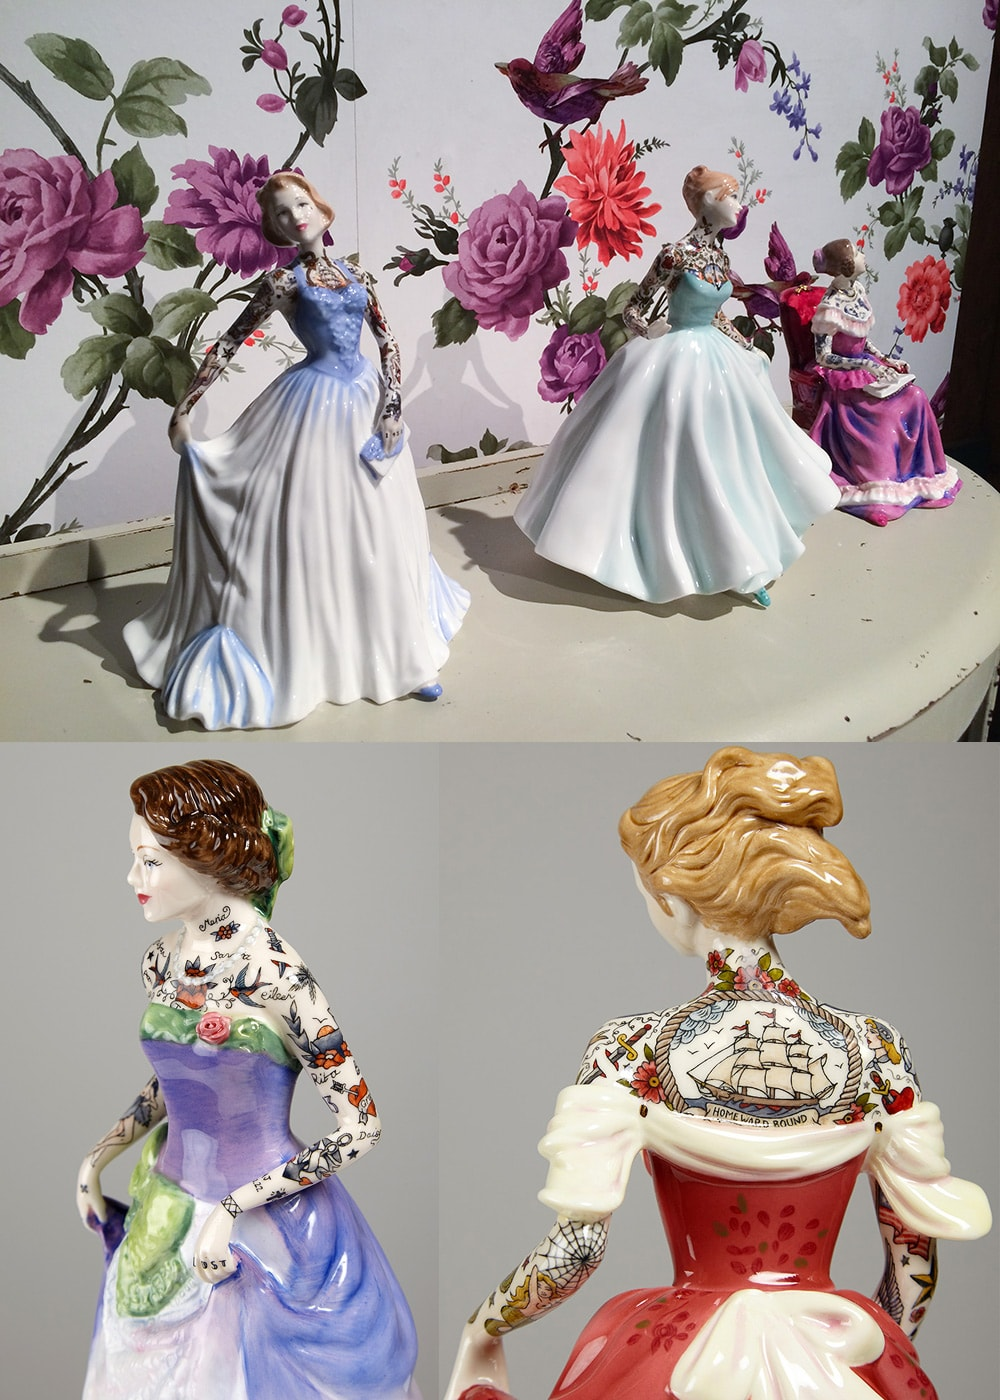 Tattooed Porcelain Figures by Jessica Harrison / Top photo by Christopher Jobson for Colossal